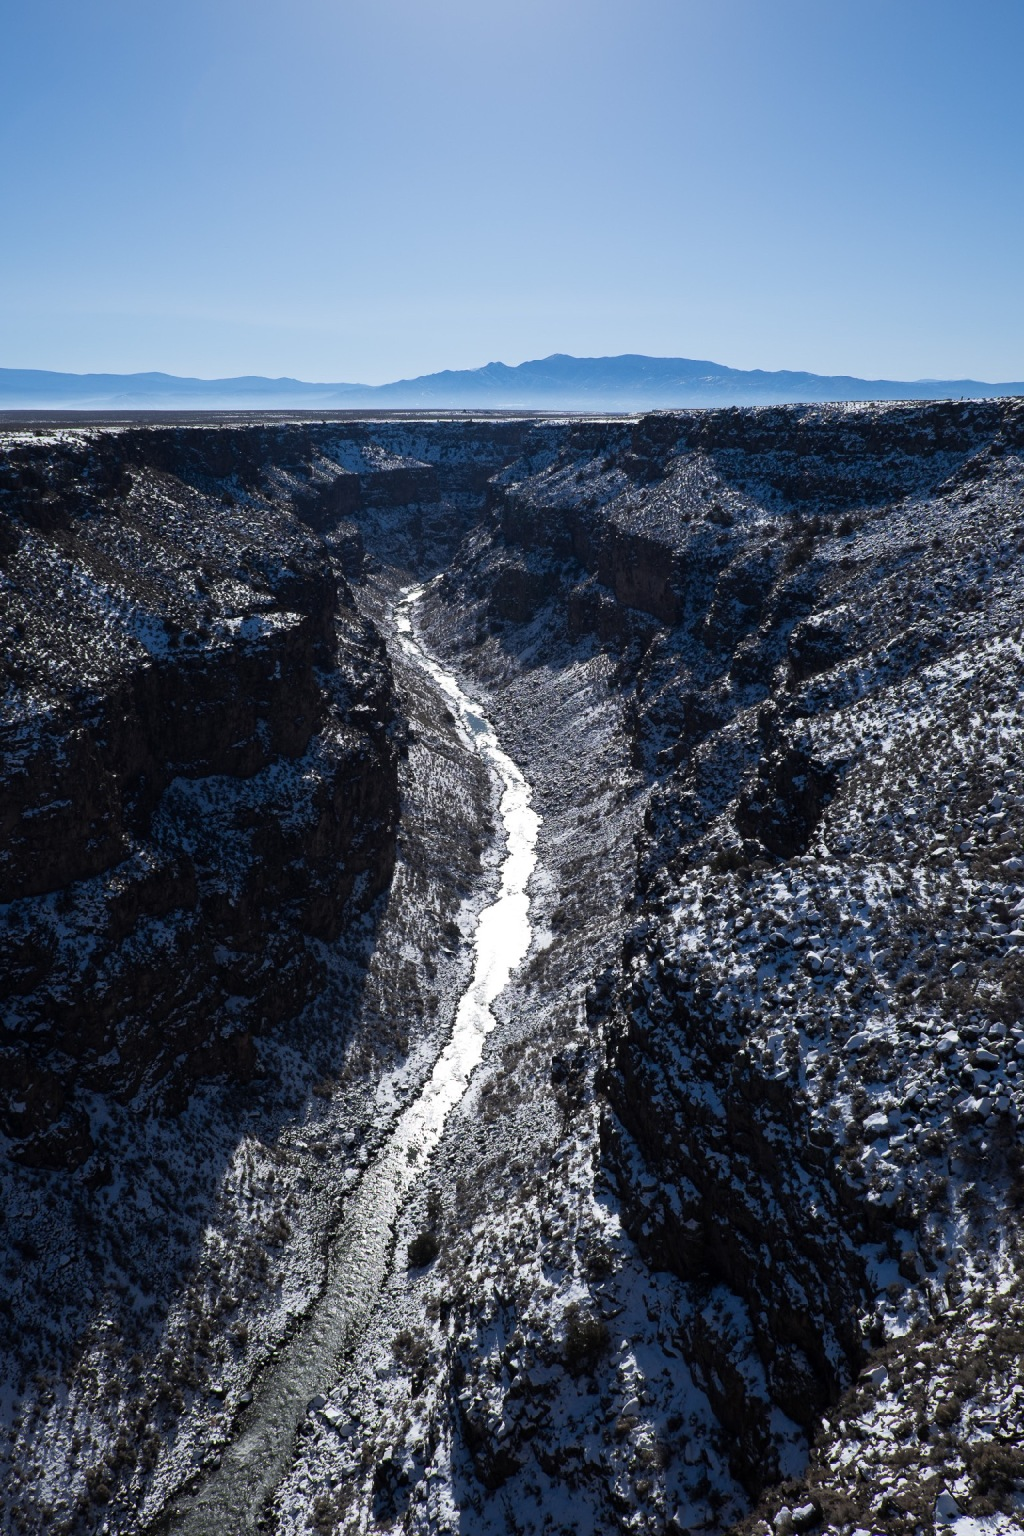 Rio Grande from Taos Bridge - Fujifilm X-T1